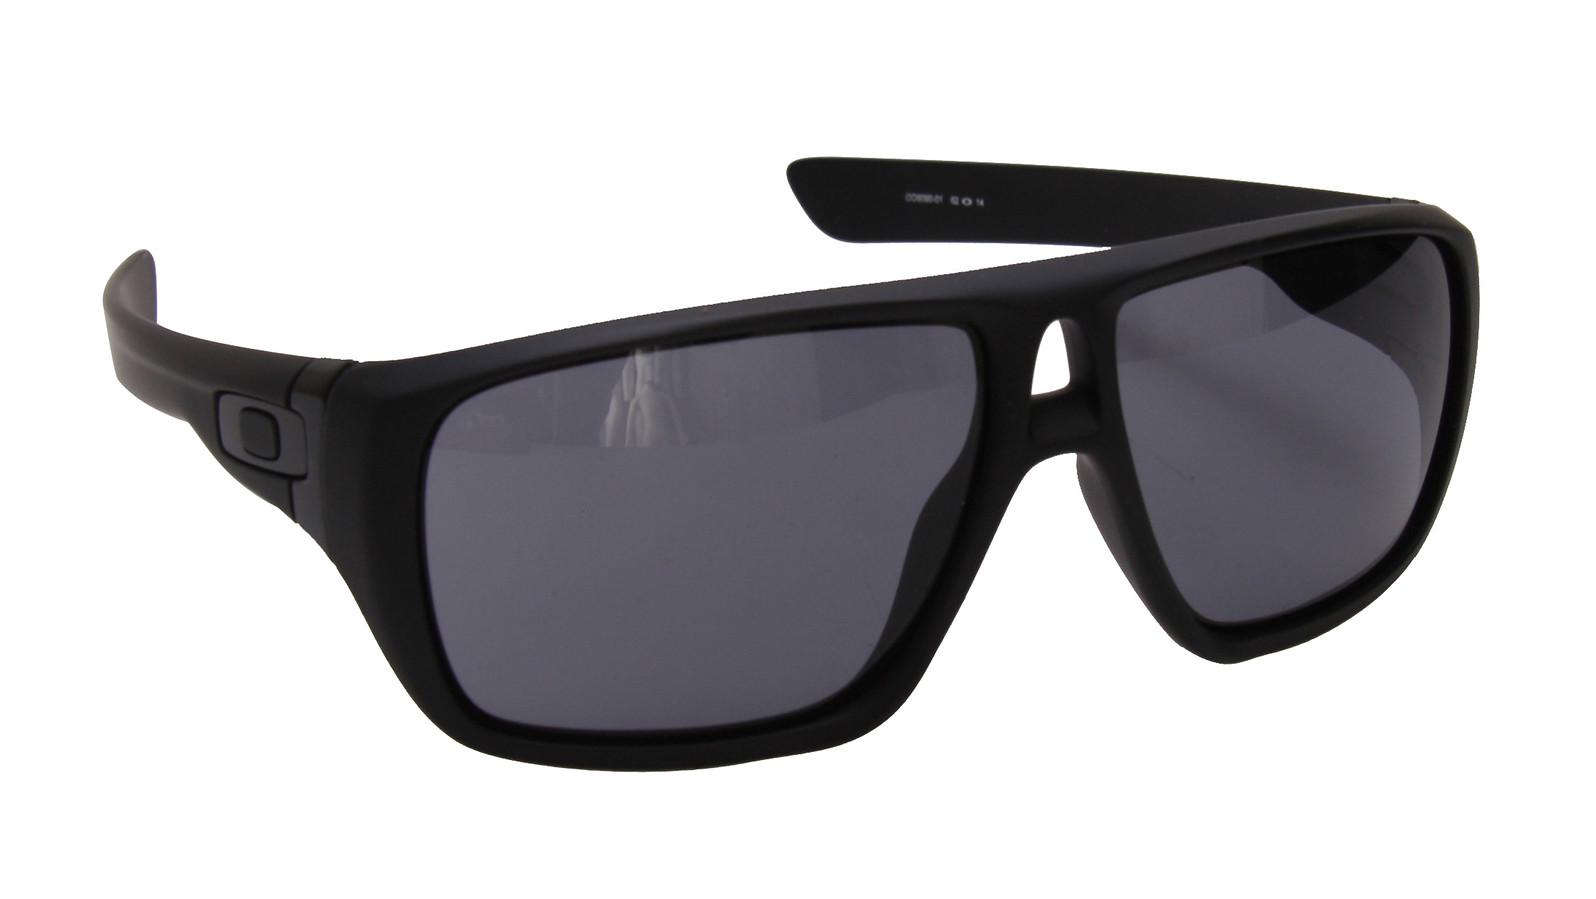 5b5290ea31 Oakley Dispatch Sunglasses Matte Black Grey Lens - Reviews ...